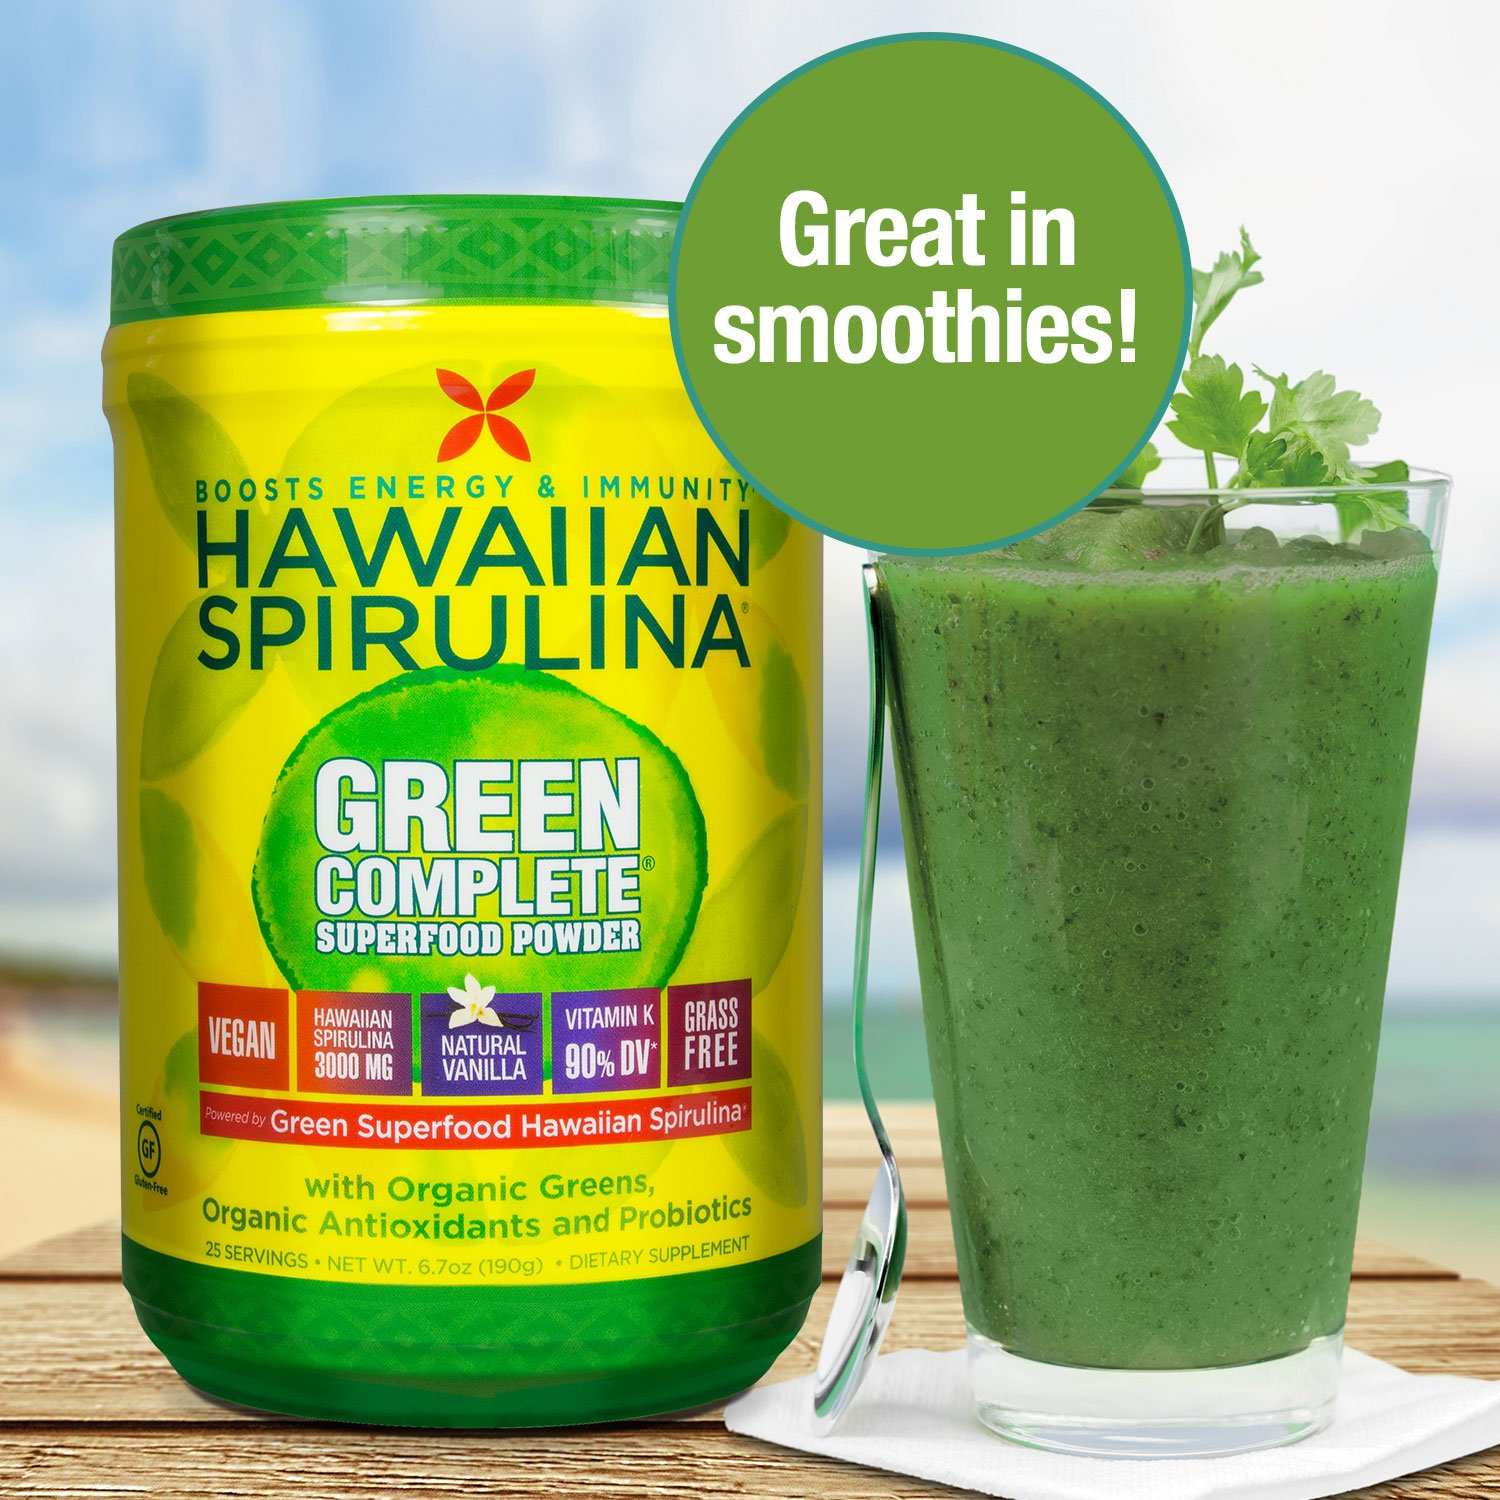 Pure Hawaiian Spirulina Green Complete Superfood Powder- Vegan, Non GMO - Natural Superfood Grown in Hawaii, 6.7 Ounce